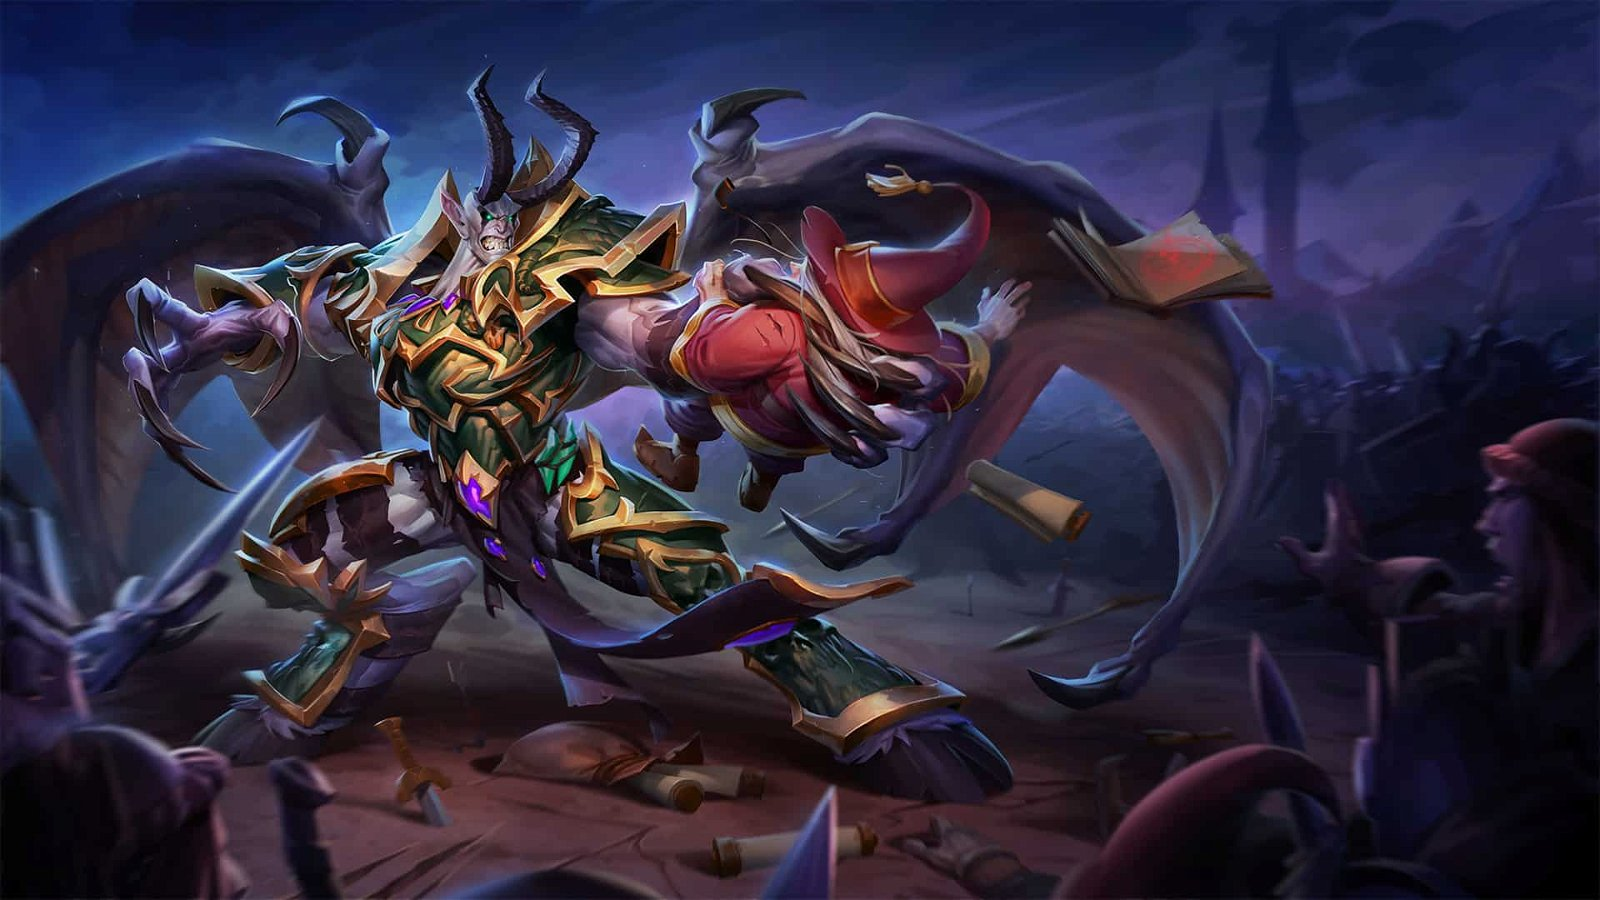 Heroes of the Storm: Dreadlord Mal'Ganis Descends Upon The Nexus 1